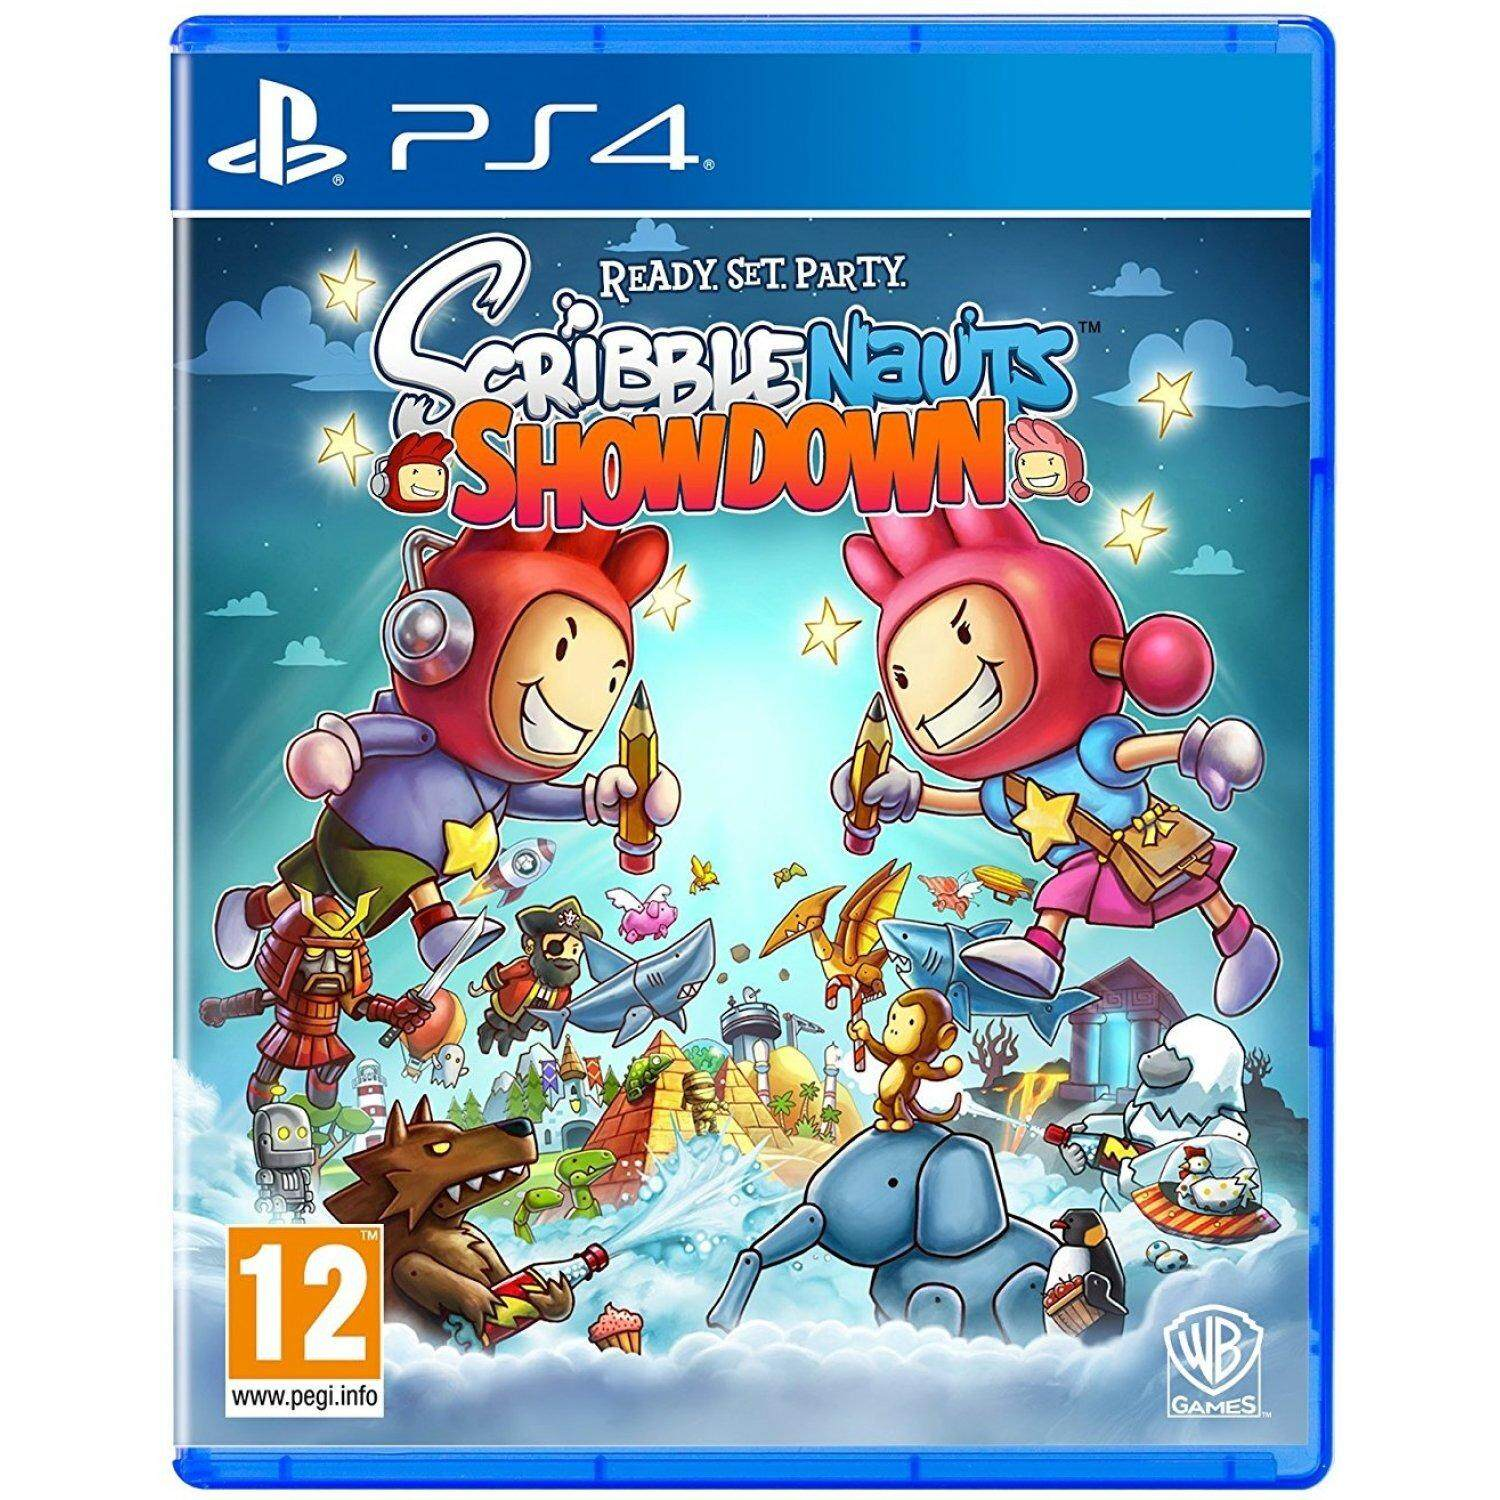 PS4 SCRIBBLENAUTS SHOWDOWN (Europe)